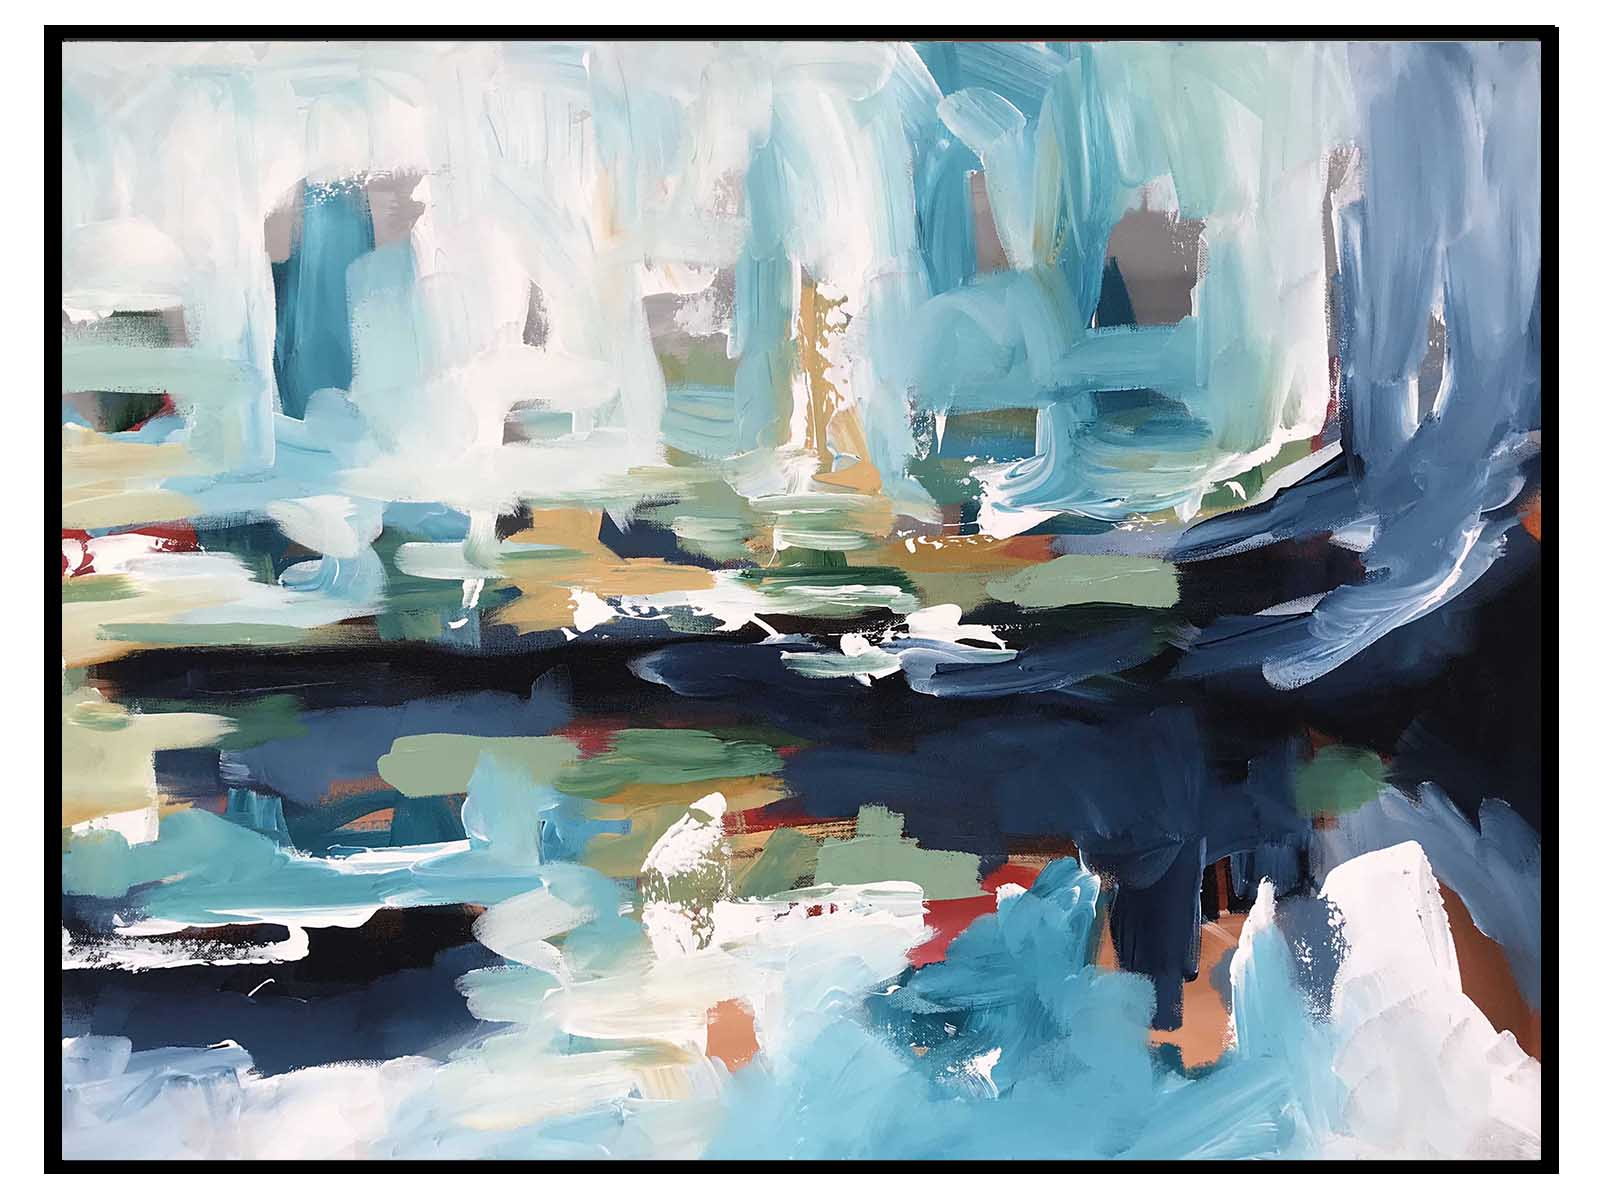 After The Smoke Clears Part 1 - 76x60 cm - Original Painting